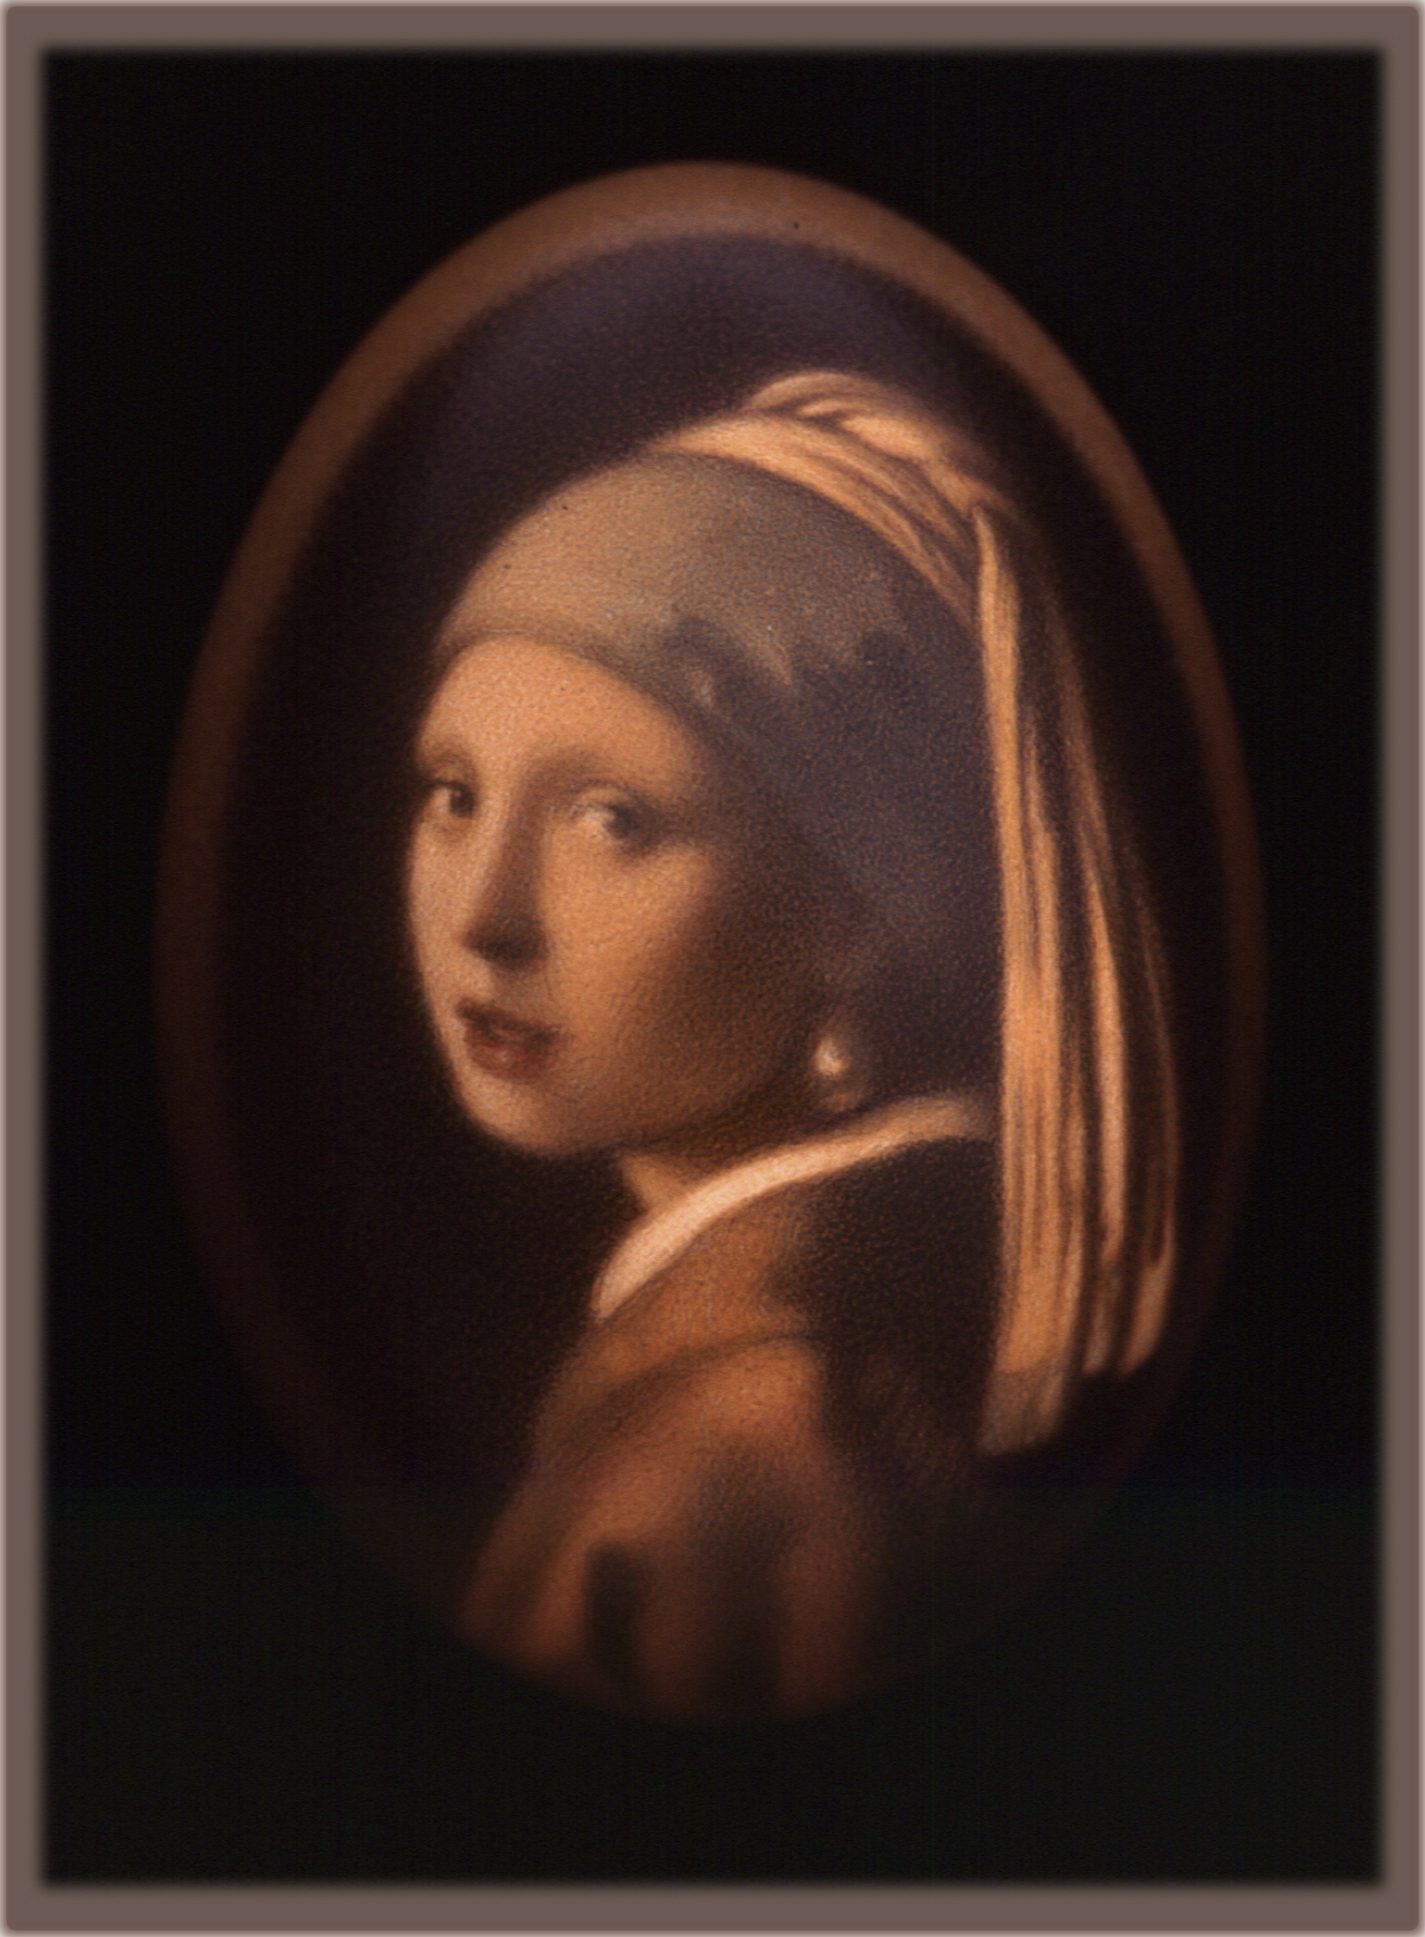 Vermeer's, Girl w/ the Pearl Earring